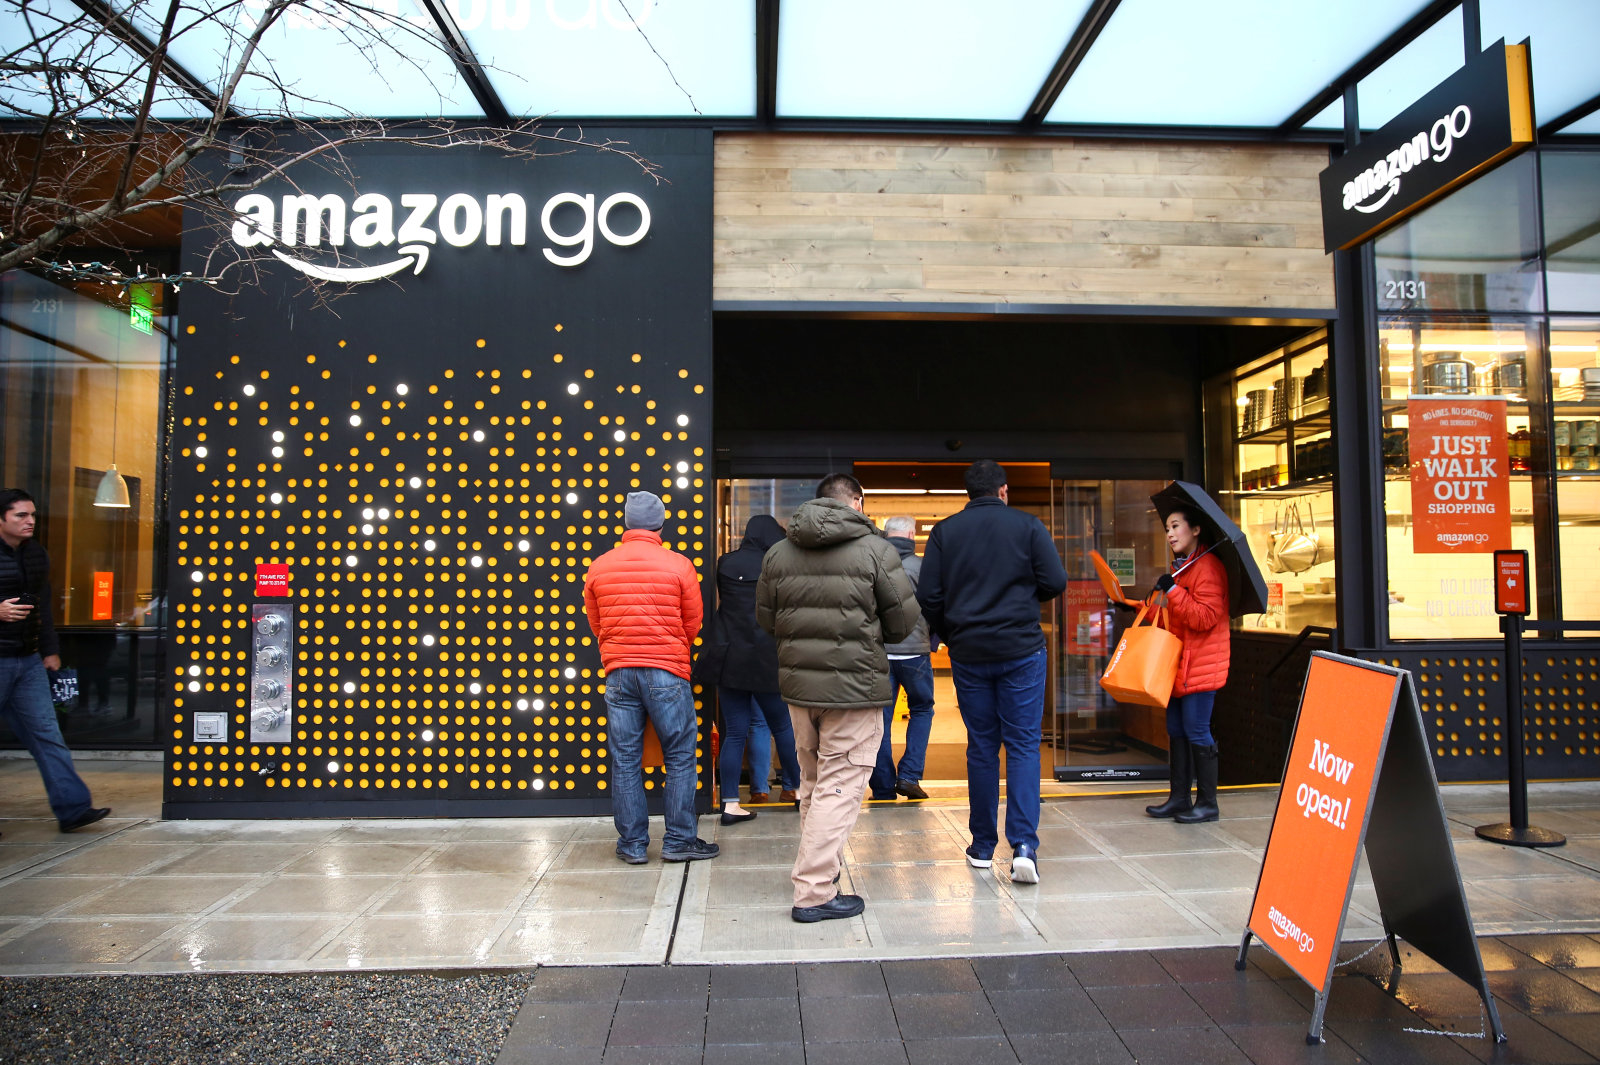 People are offered free reusable bags as they enter the new Amazon Go store at Amazon's Seattle headquarters in Seattle, Washington, U.S., January 29, 2018.  REUTERS/Lindsey Wasson